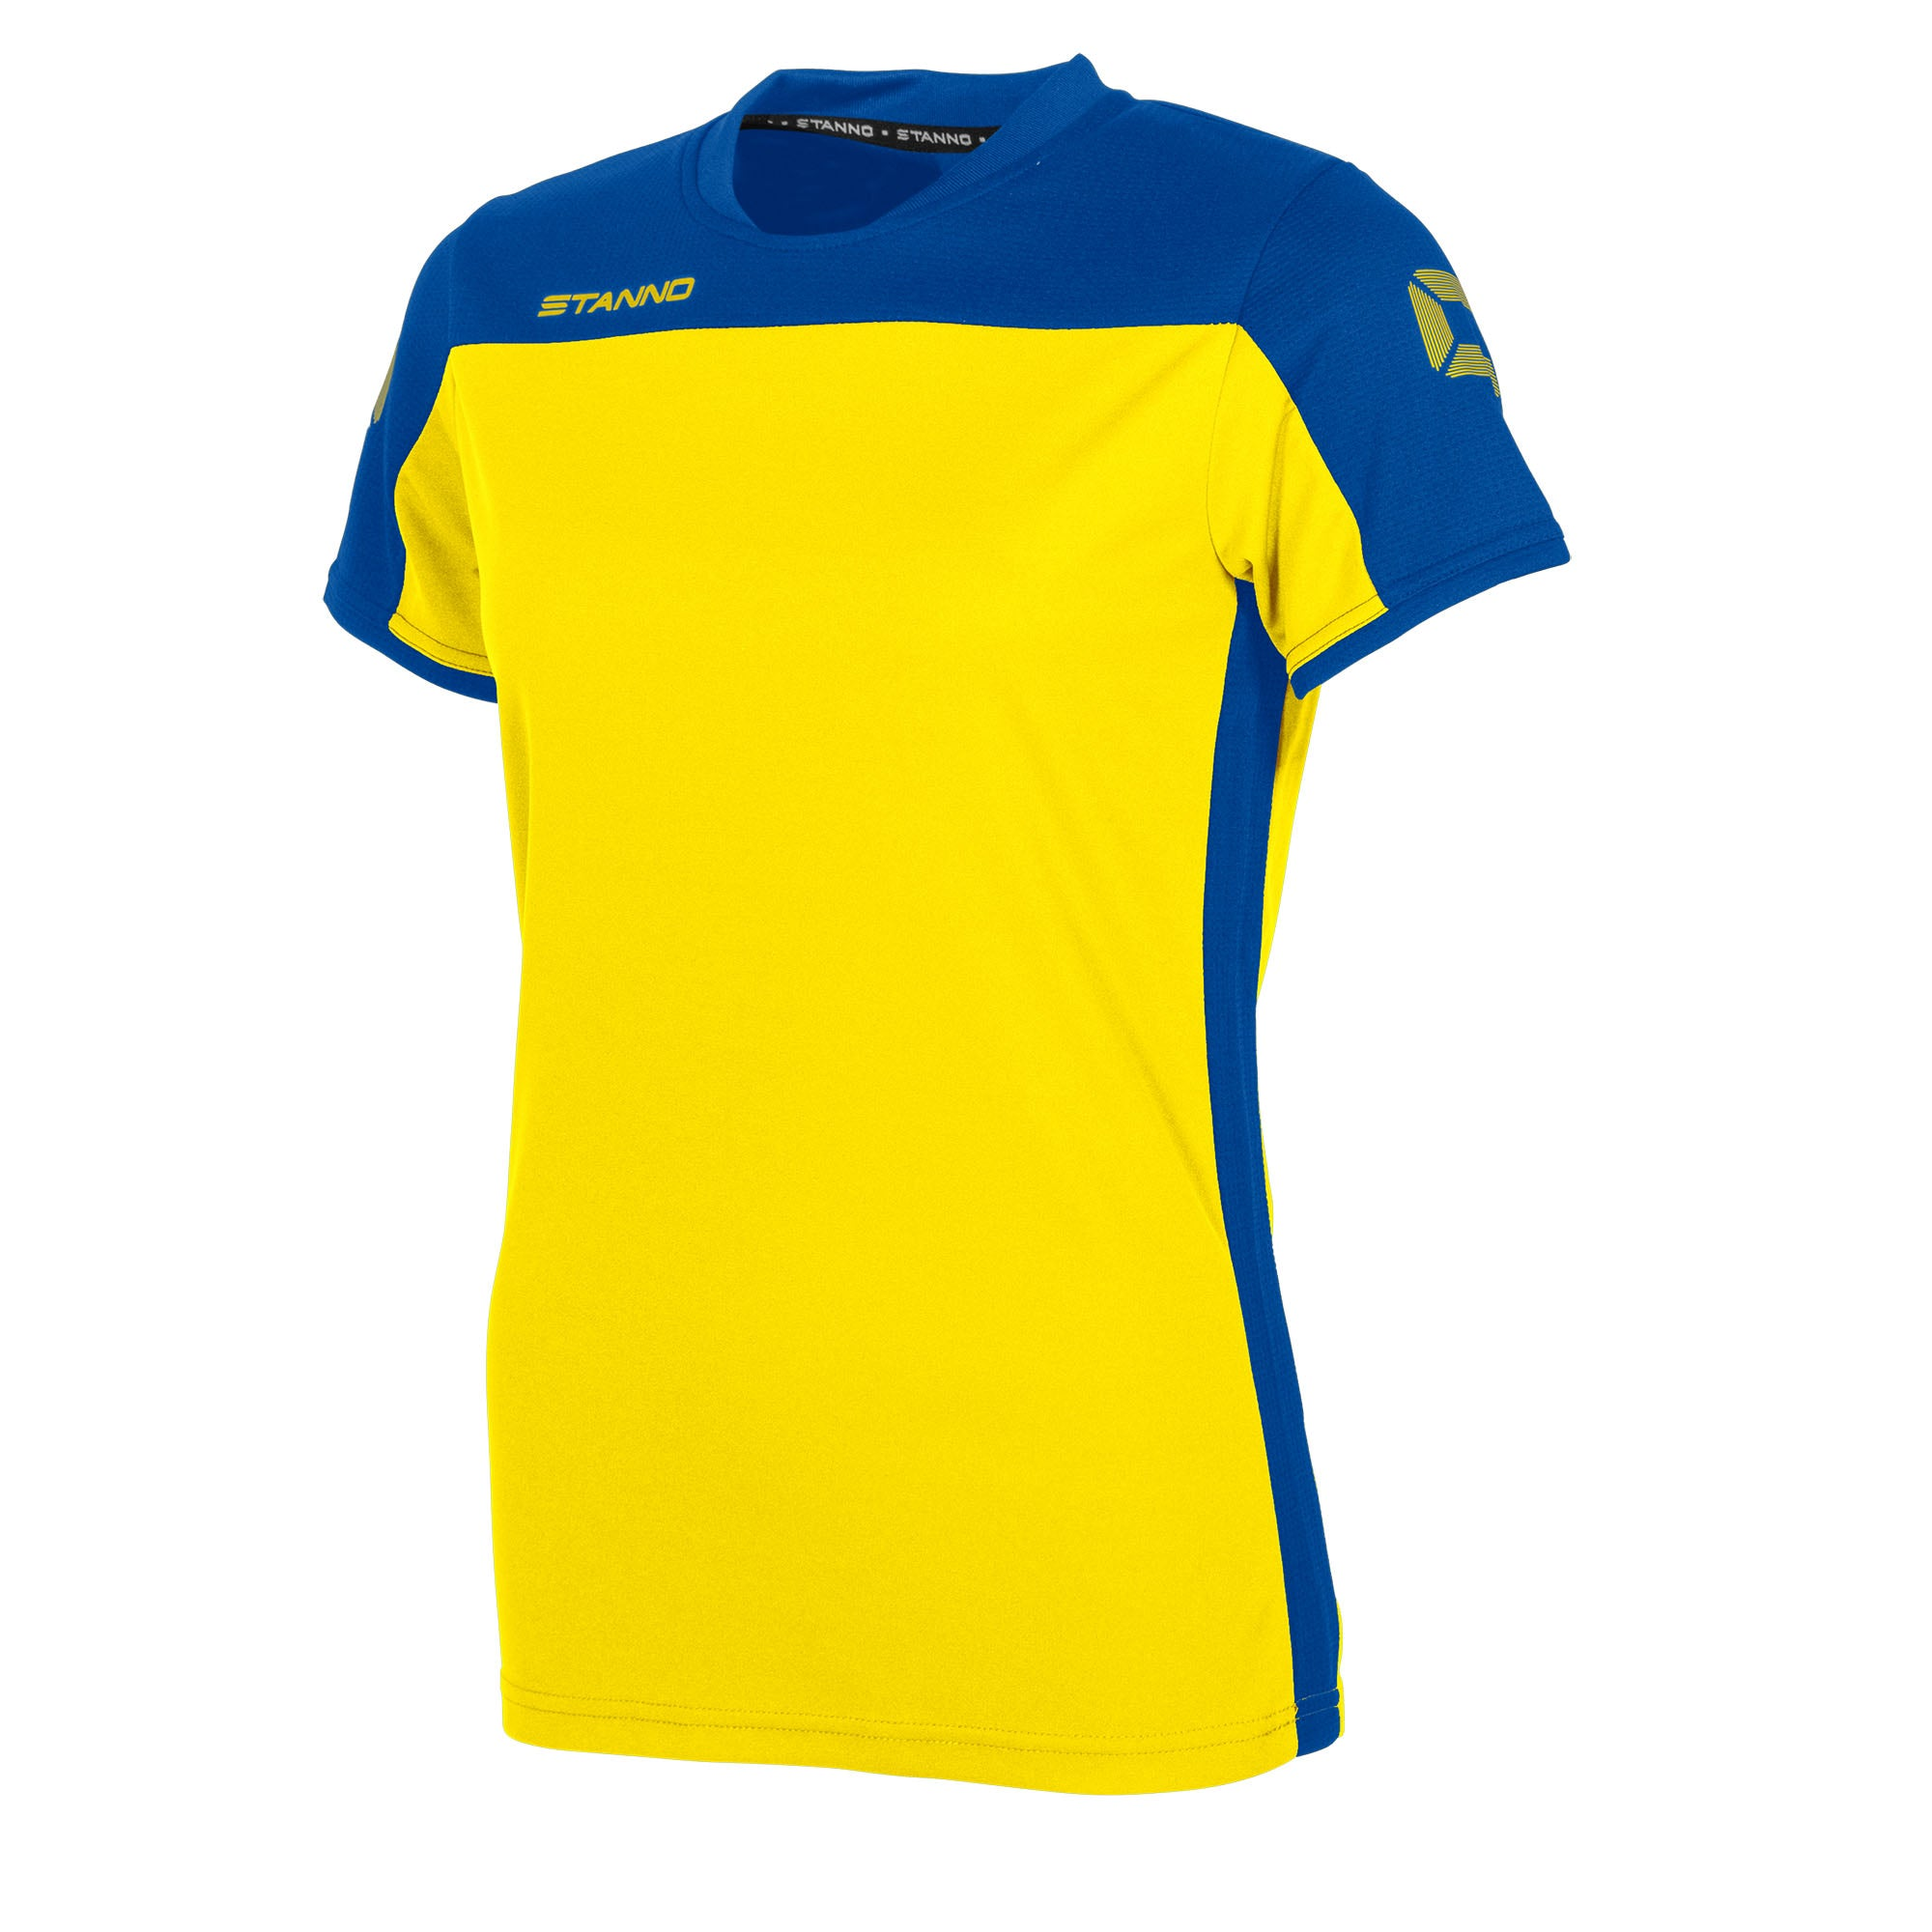 Stanno Pride ladies t-shirt in yellow, with mesh contrast royal blue shoulder and side panel